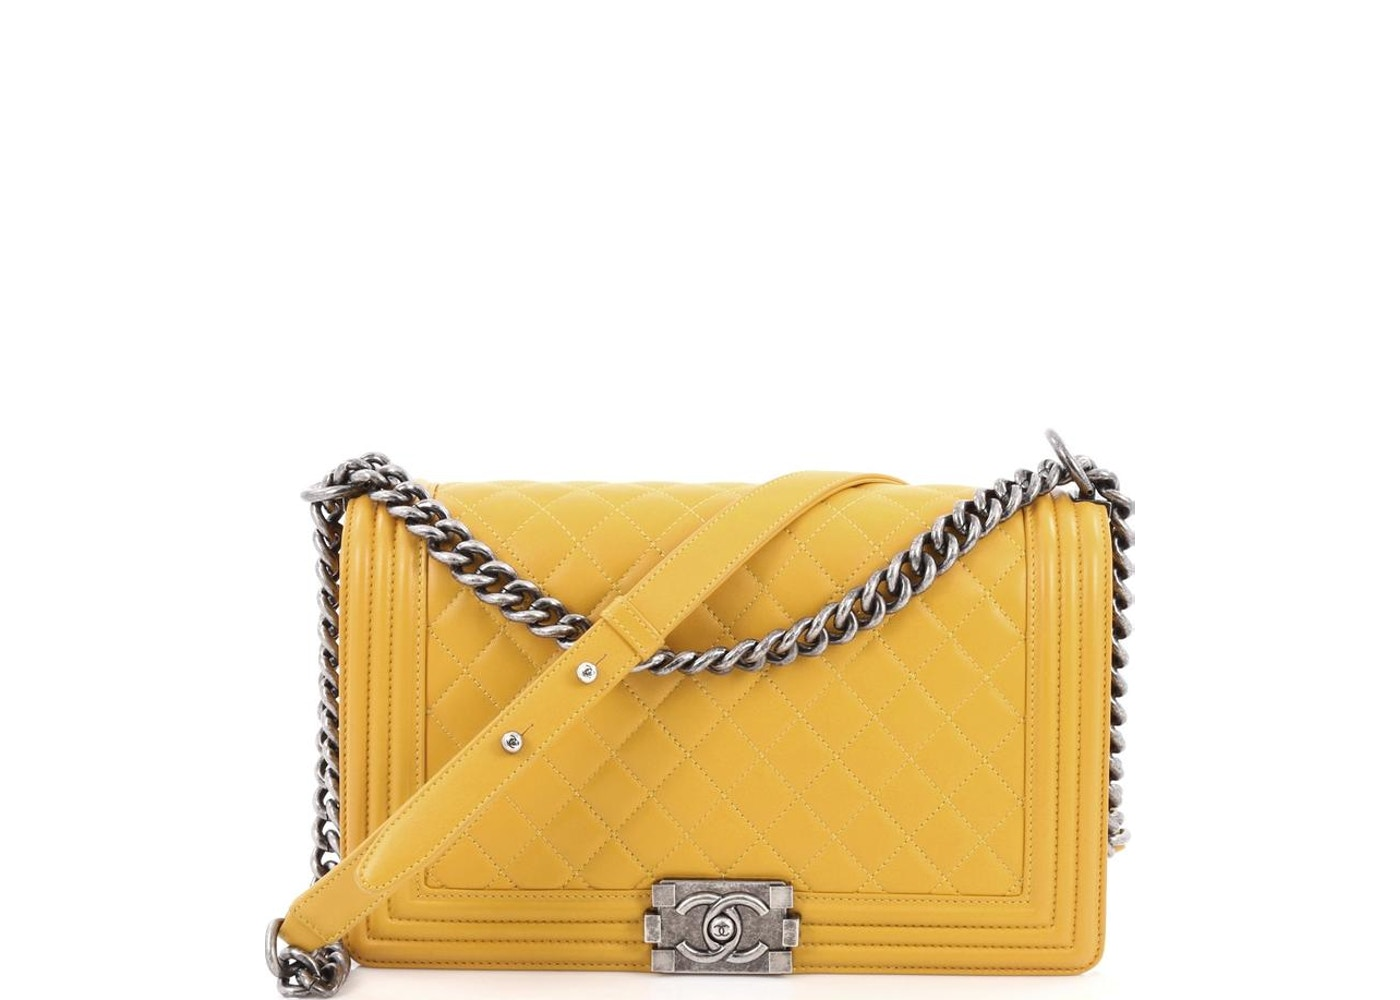 4d79f799a30689 Chanel Boy Flap Bag Quilted Diamond New Medium Mustard Yellow. Quilted  Diamond New Medium Mustard Yellow